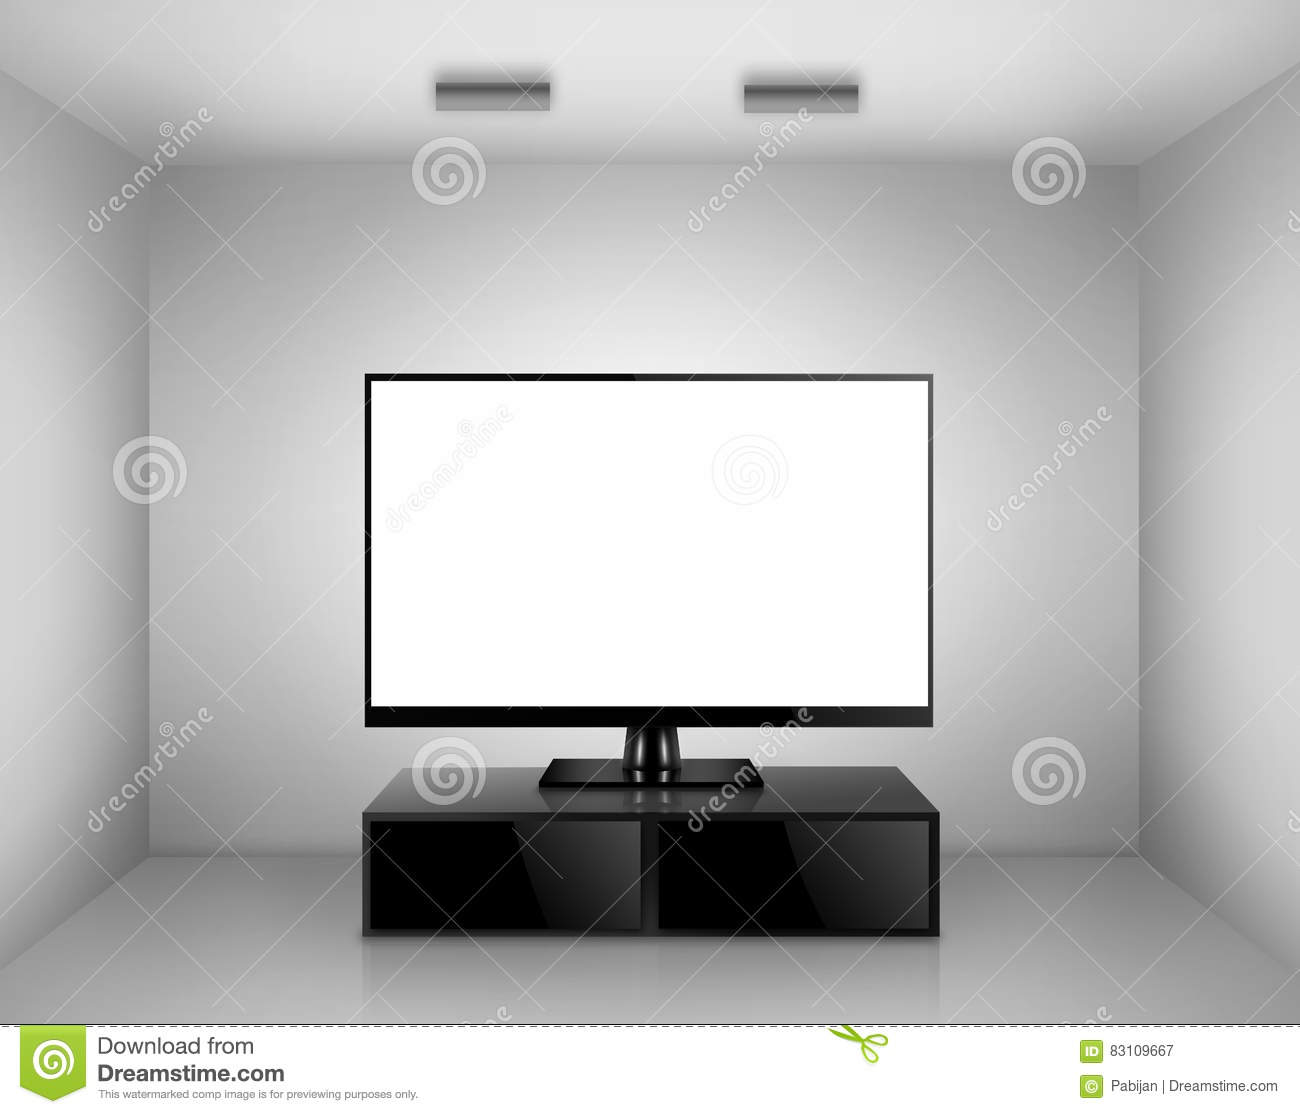 TV with TV stand in a room stock illustration. Illustration of ...